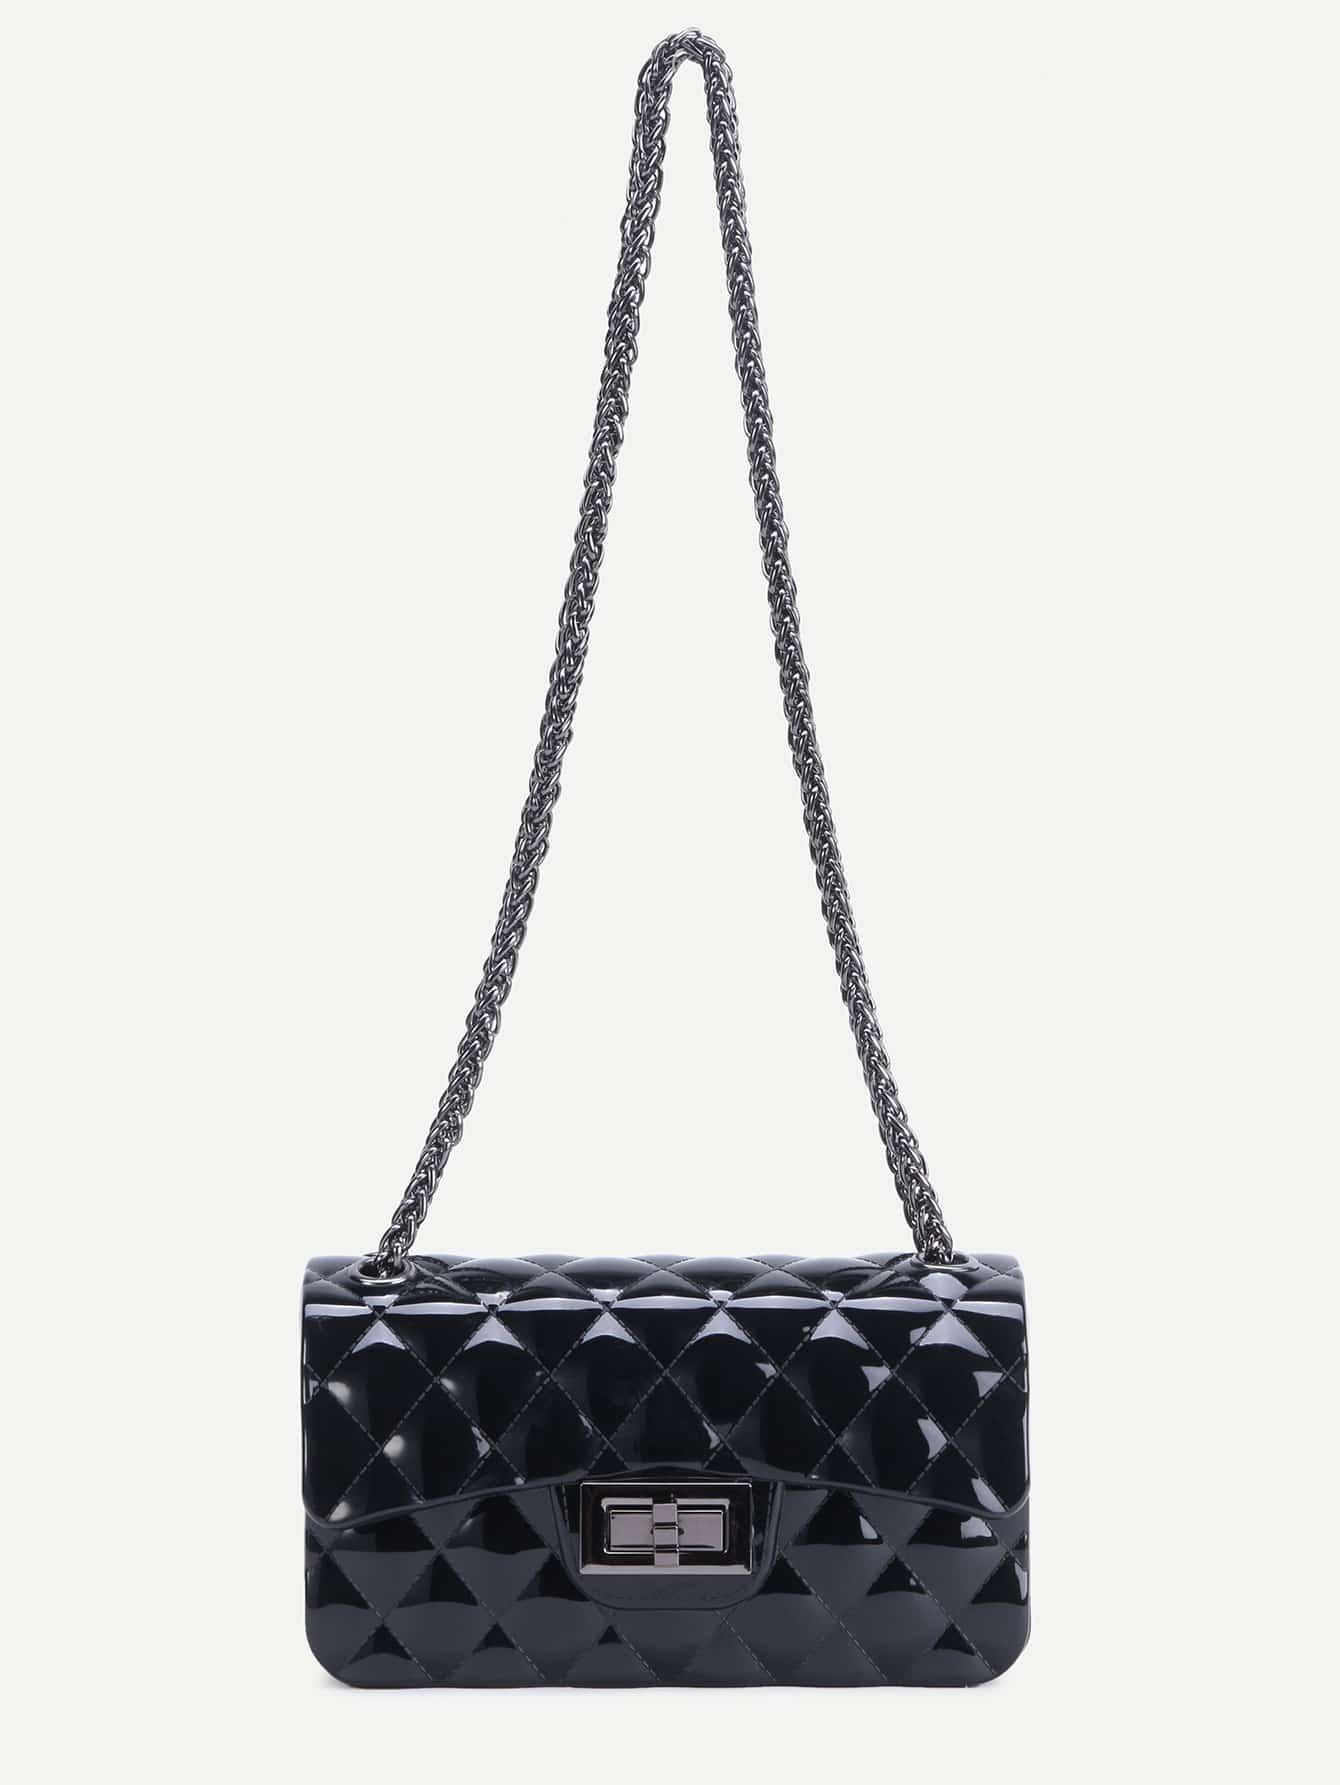 e0b190f3b Black Quilted Crossbody Bag With Chain | Stanford Center for ...